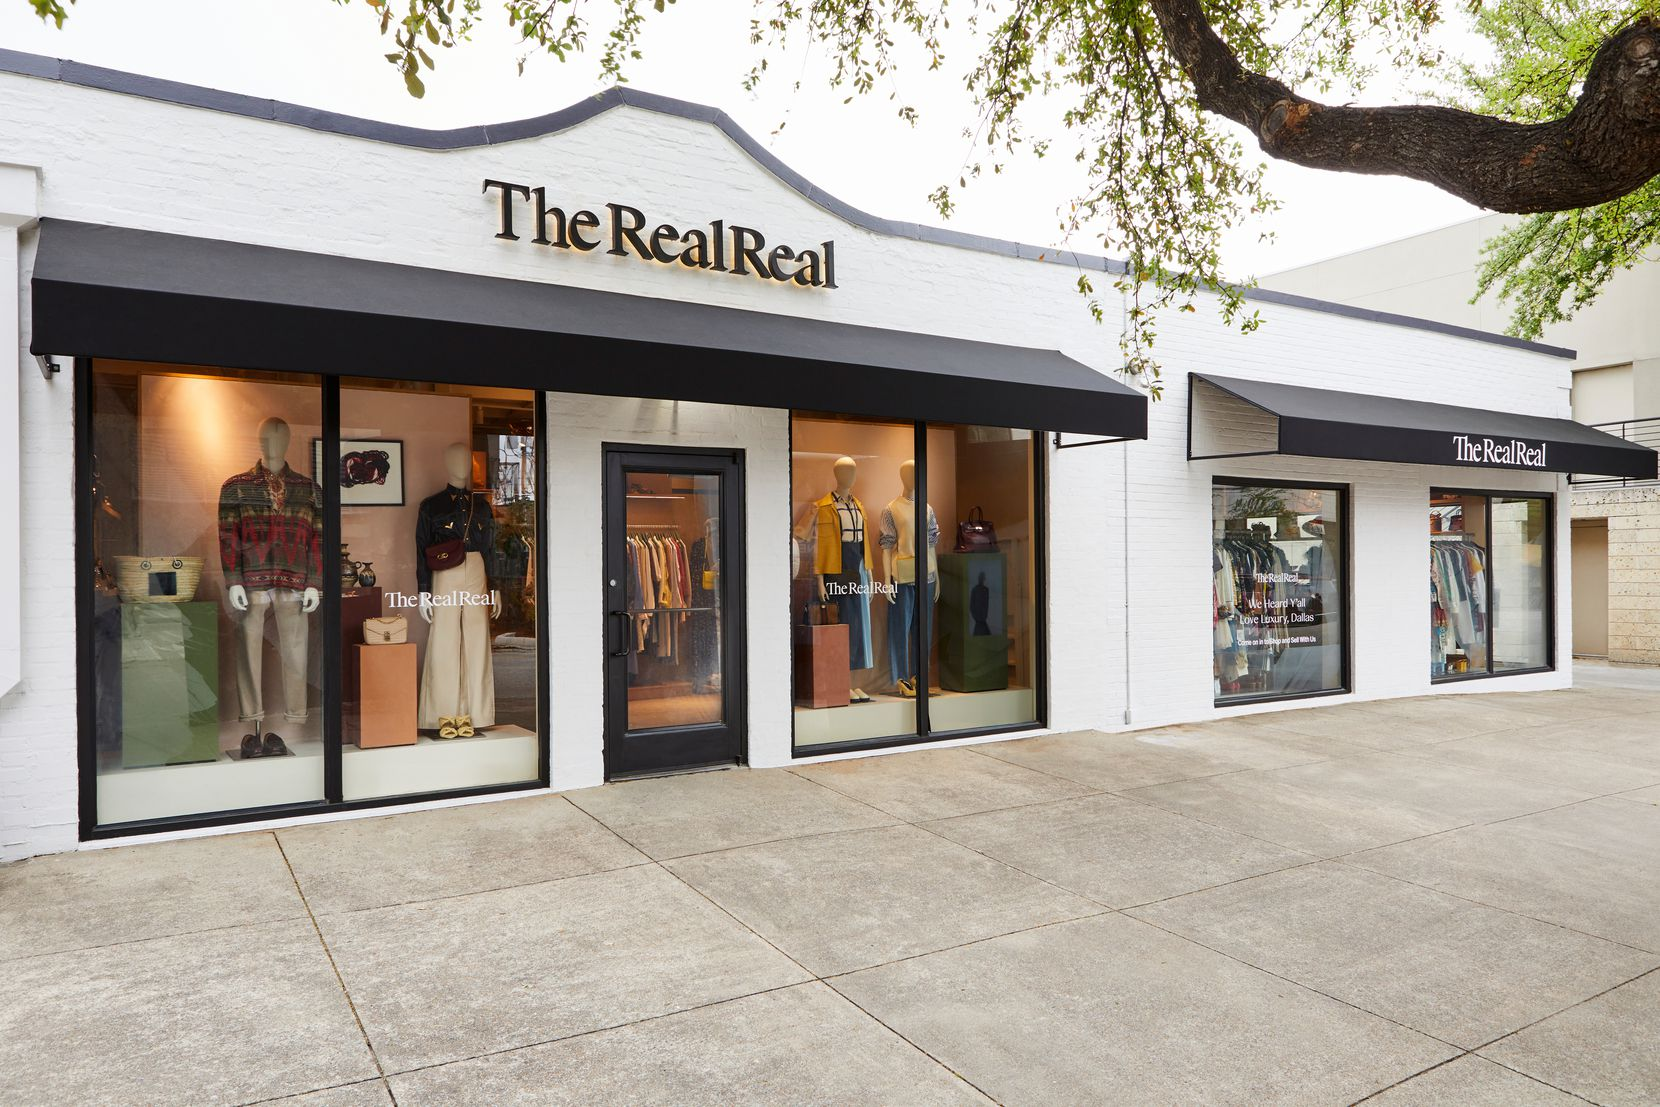 The RealReal opened at 3120 Knox Street in Dallas in April. The store is taking over space that formerly housed Kate Spade New York and is one of the new stores coming to the Knox District.